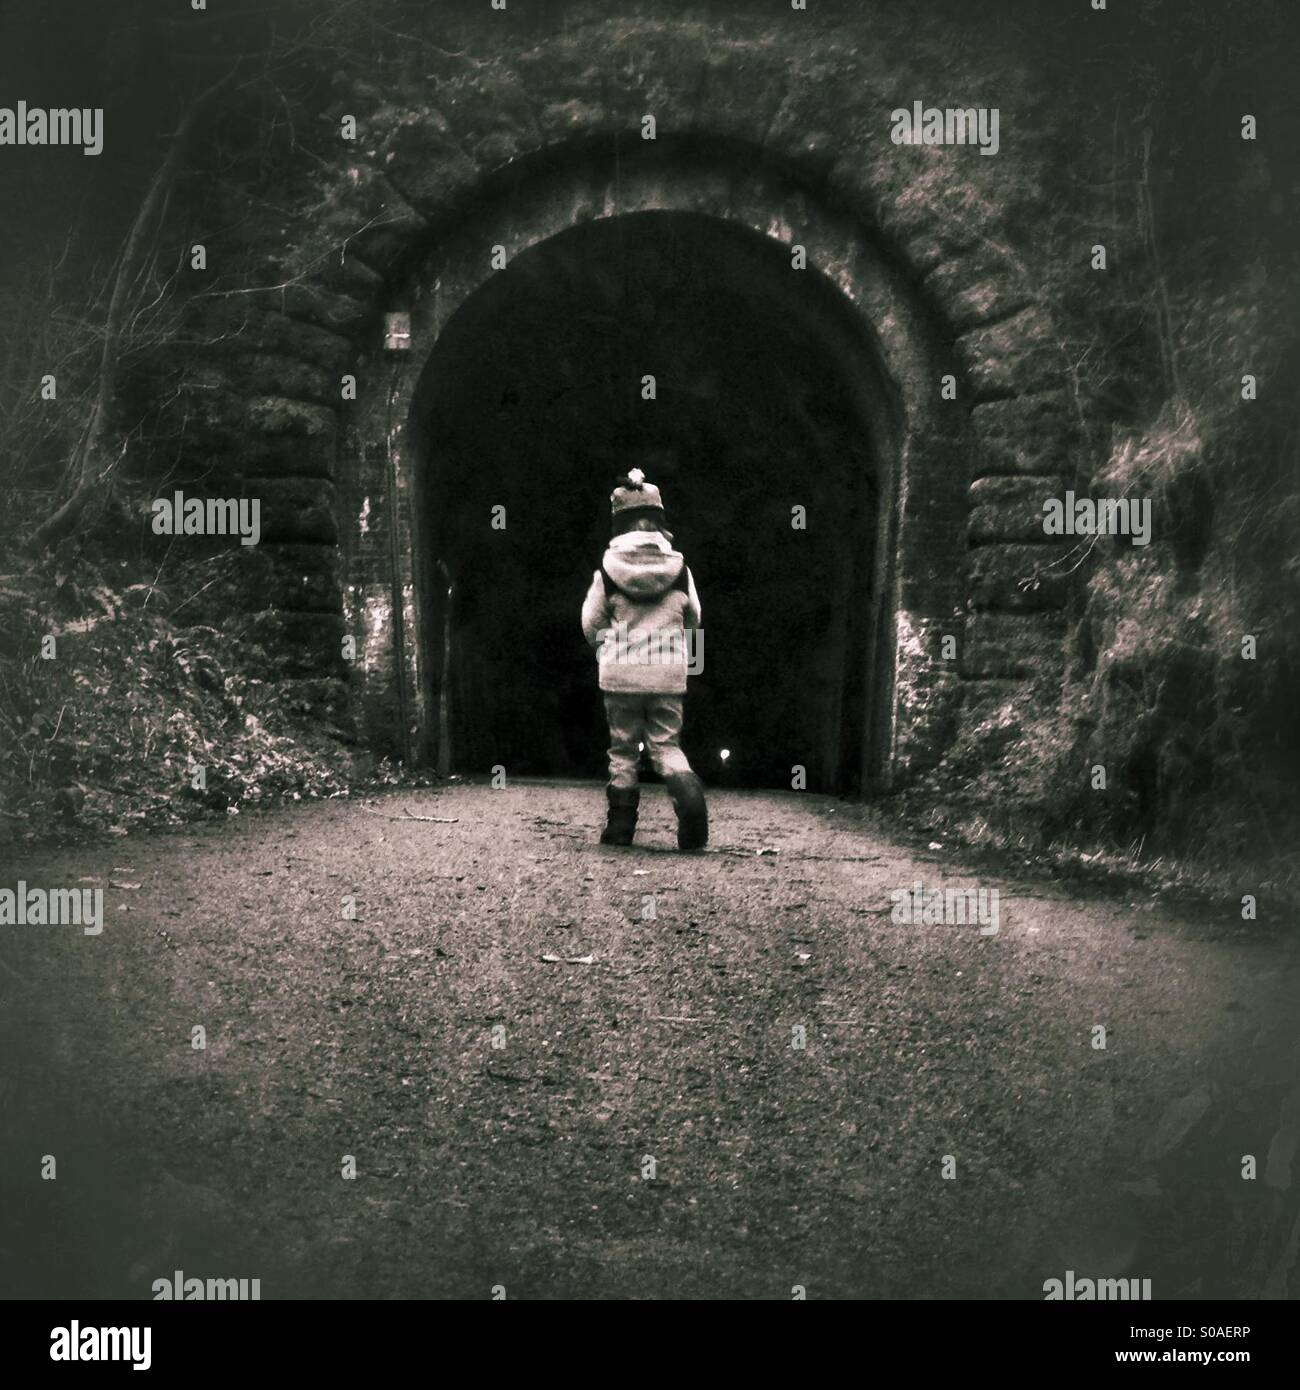 Boy entering tunnel alone - Stock Image